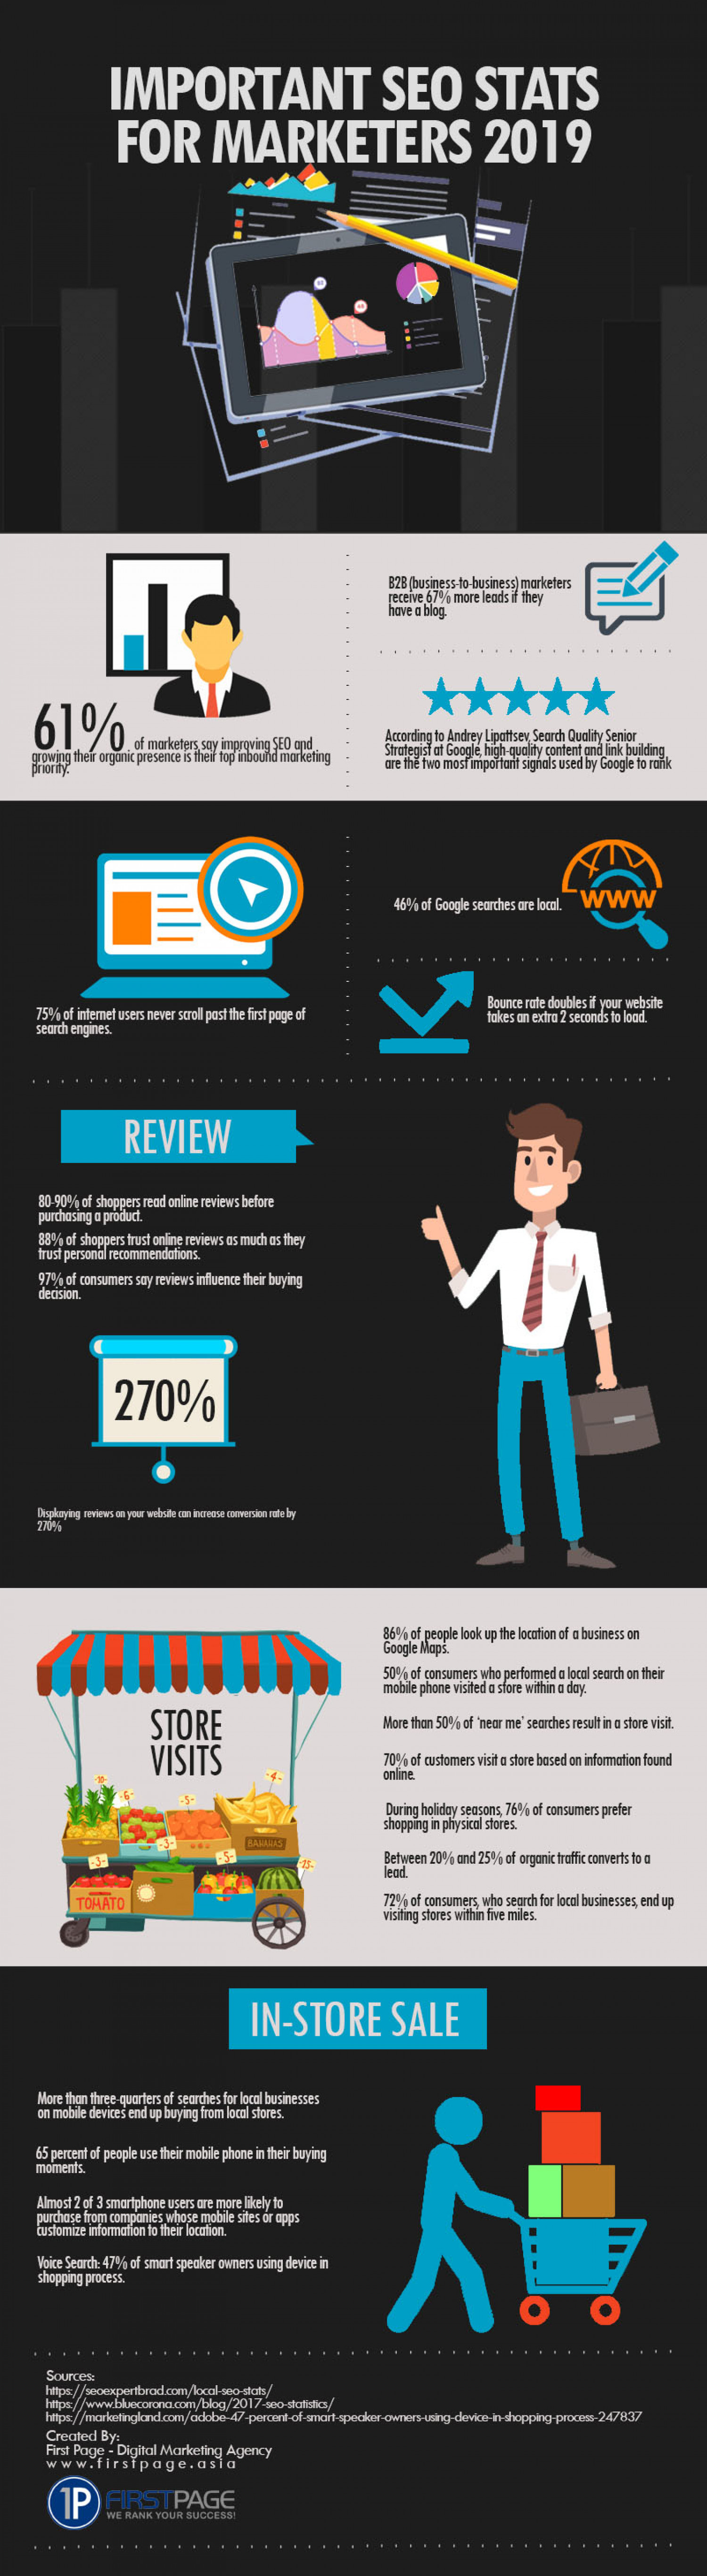 Important SEO Stats for Marketers 2019 Infographic